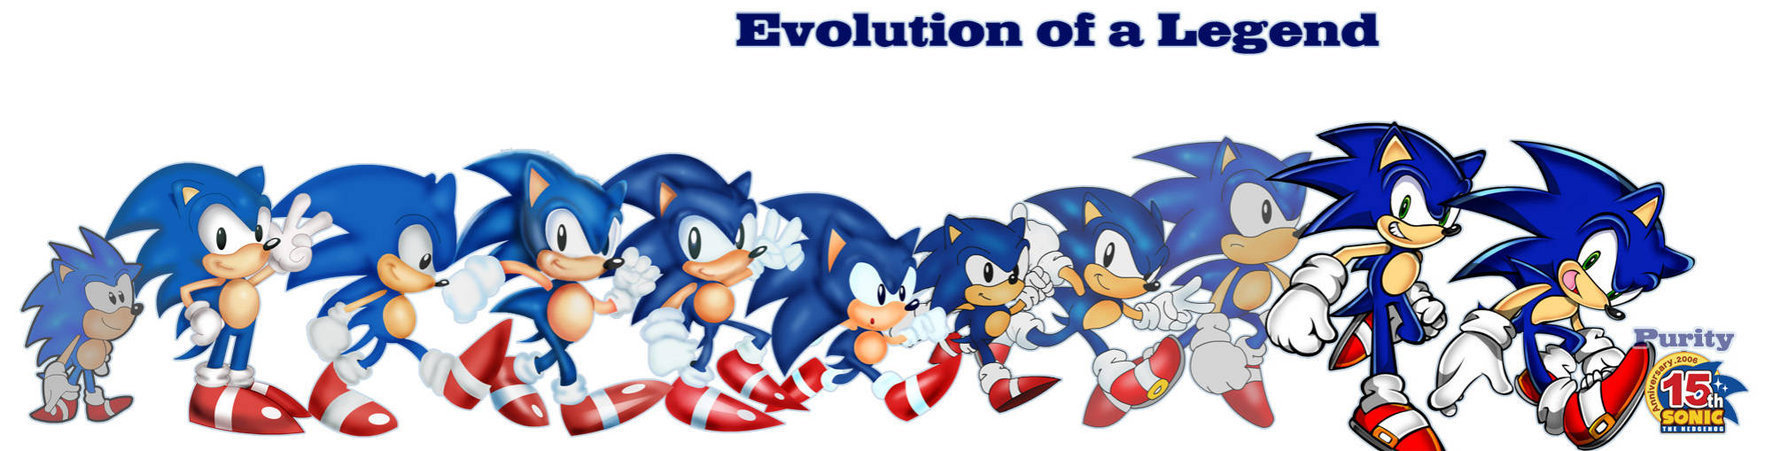 Evolution-of-The-Legend-Sonic-sonic-fore